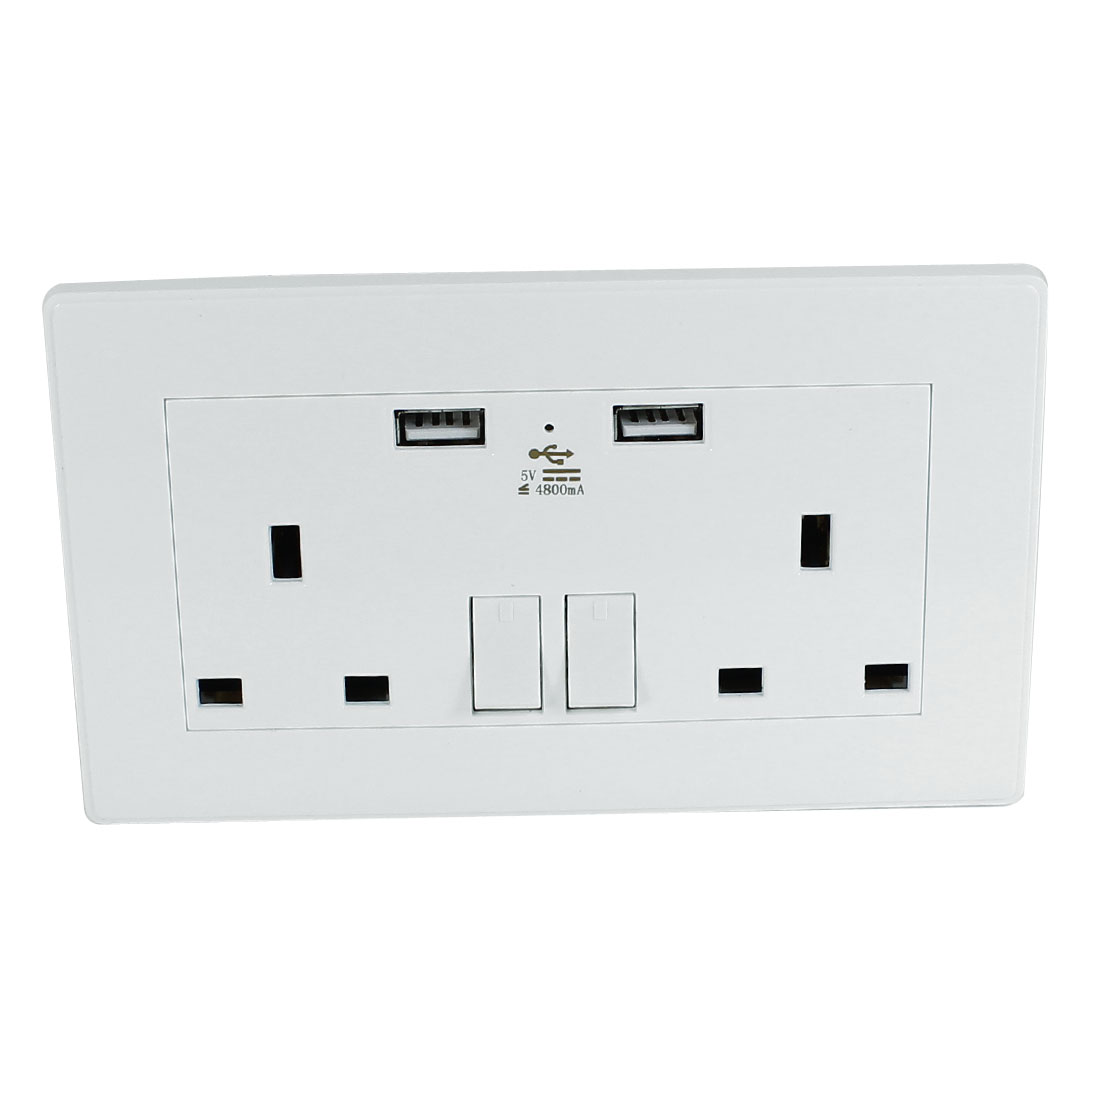 Dual AC 110V-250V UK Socket 2 USB Port Charging DC 5V 4800mA Mains Power Switch Wall Outlet